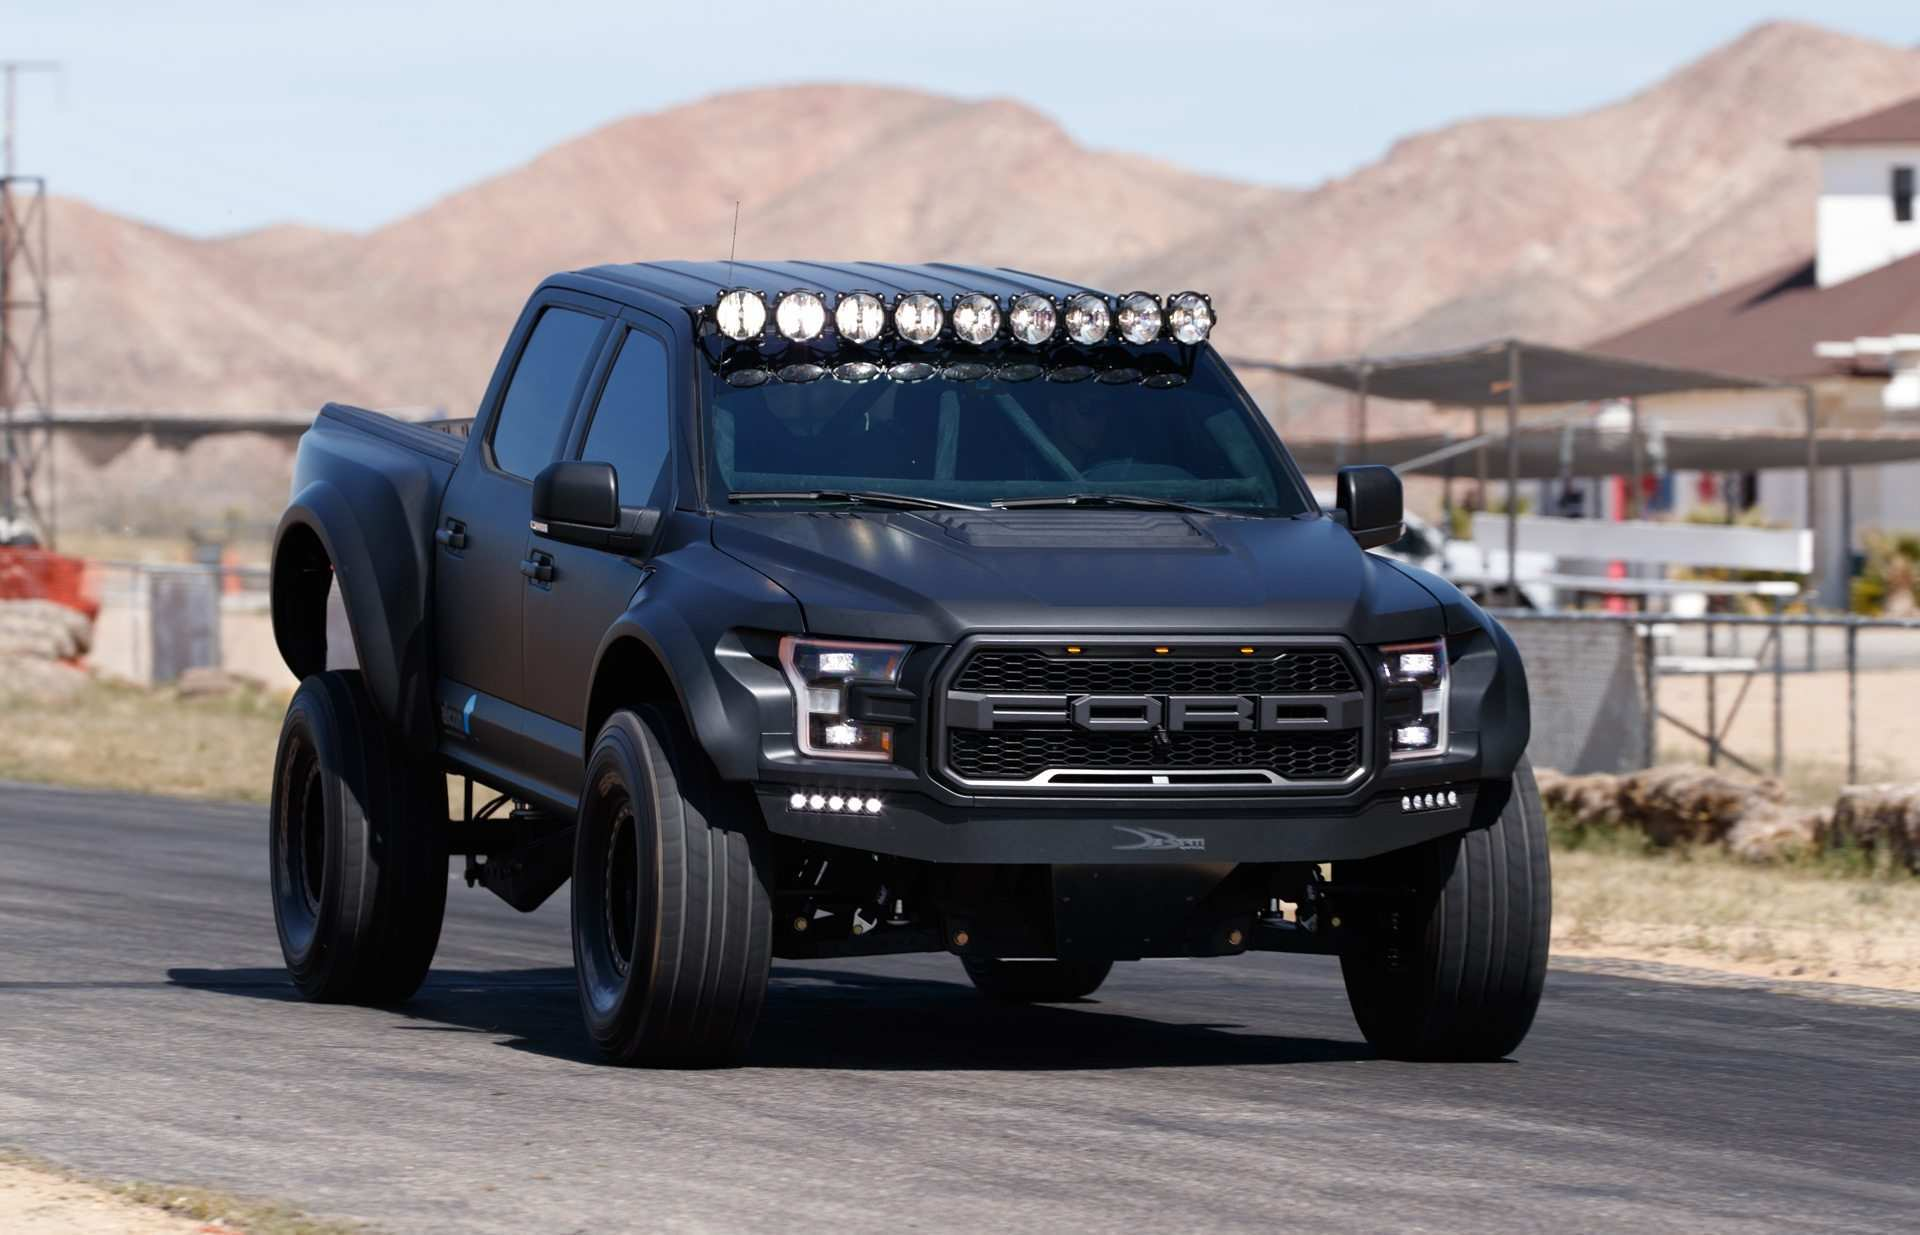 60 The Best 2020 Ford F150 Svt Raptor Release Date